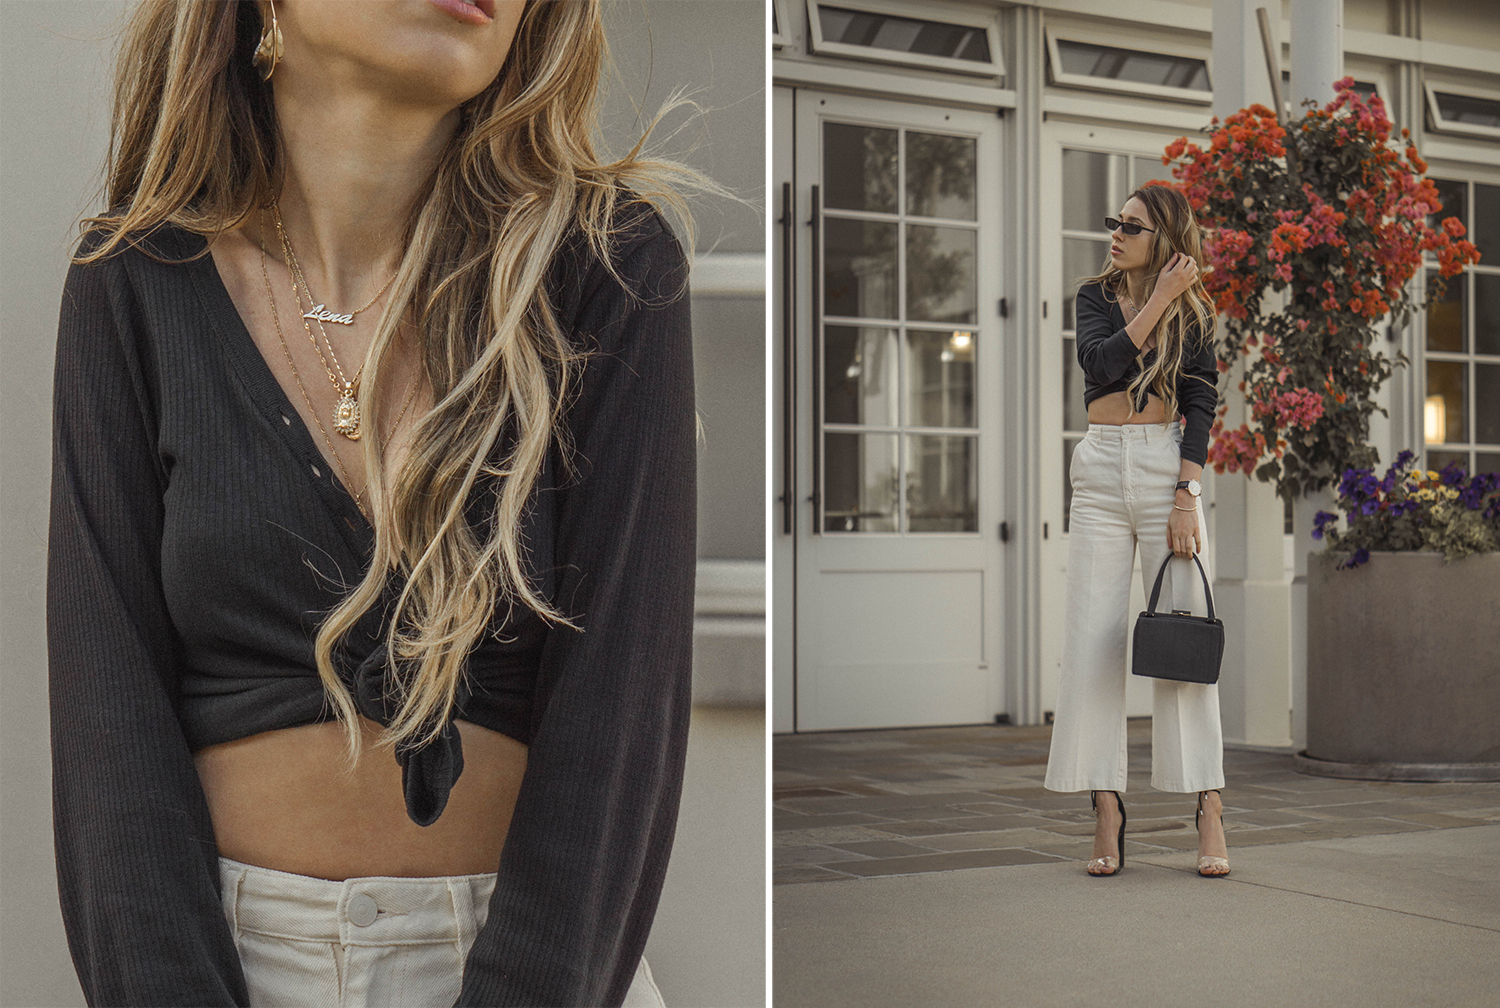 high_waisted_wide_white_jeans_clear_shoes_heels_street_style_outfit_fashion_blogger_vintage_lena_juice_the_white_ocean_08